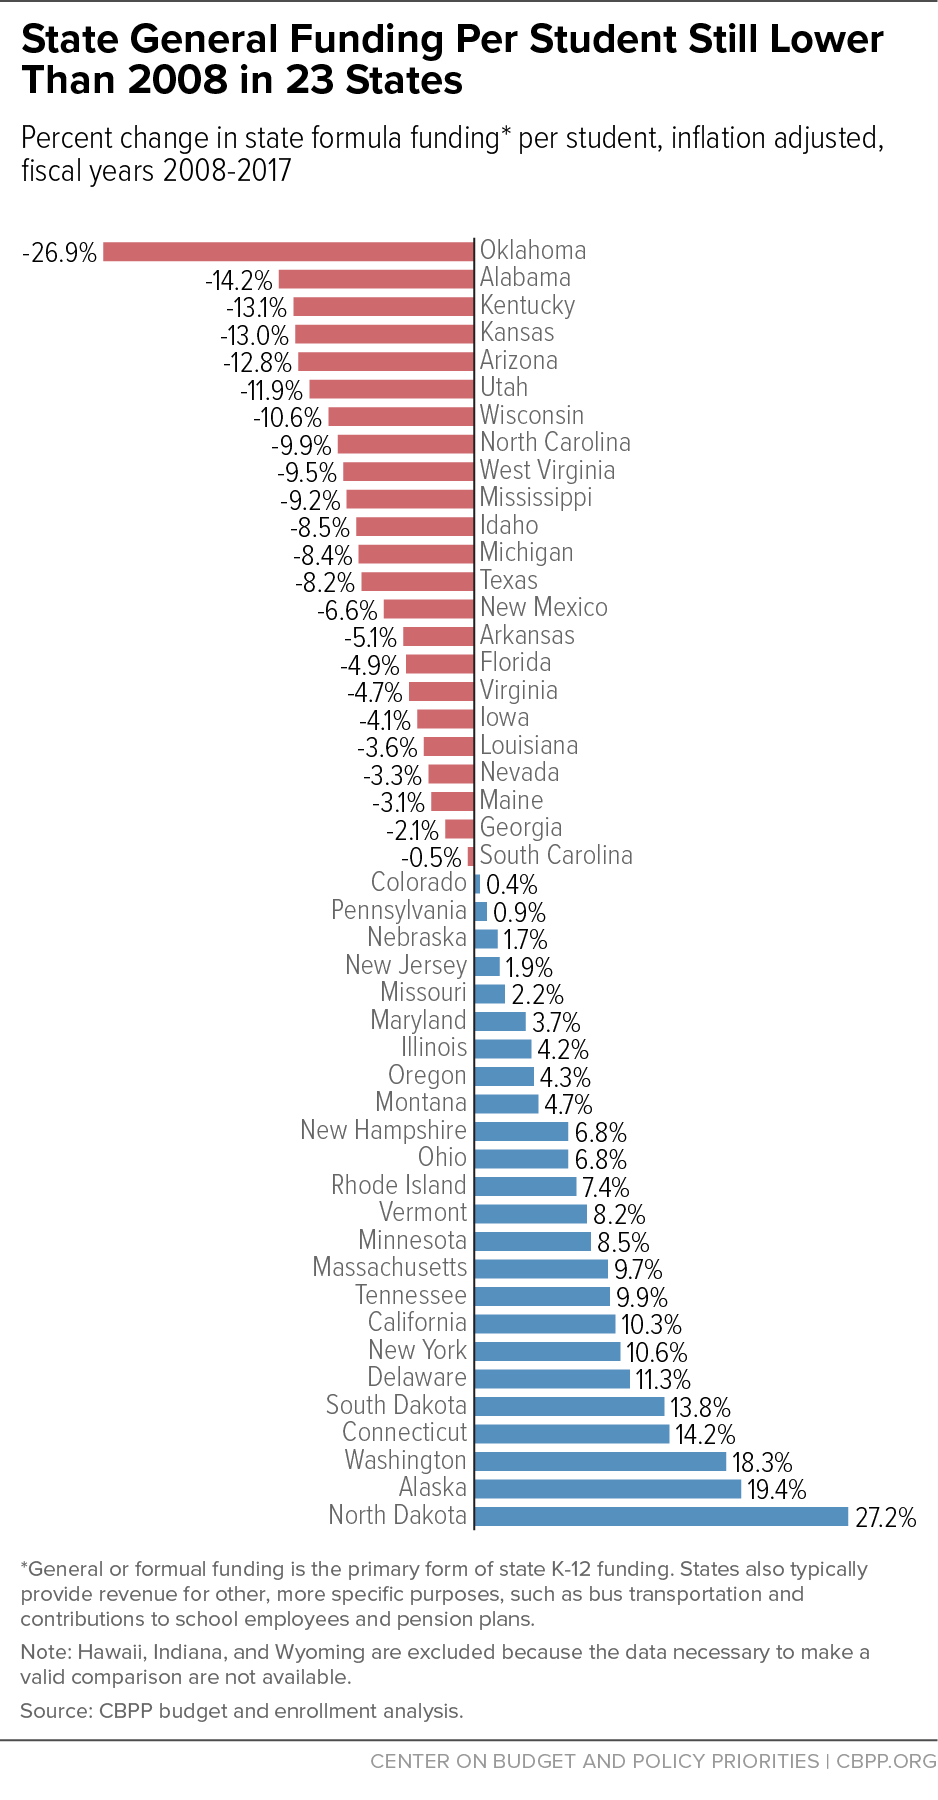 State General Funding Per Student Still Lower Than 2008 in 23 States